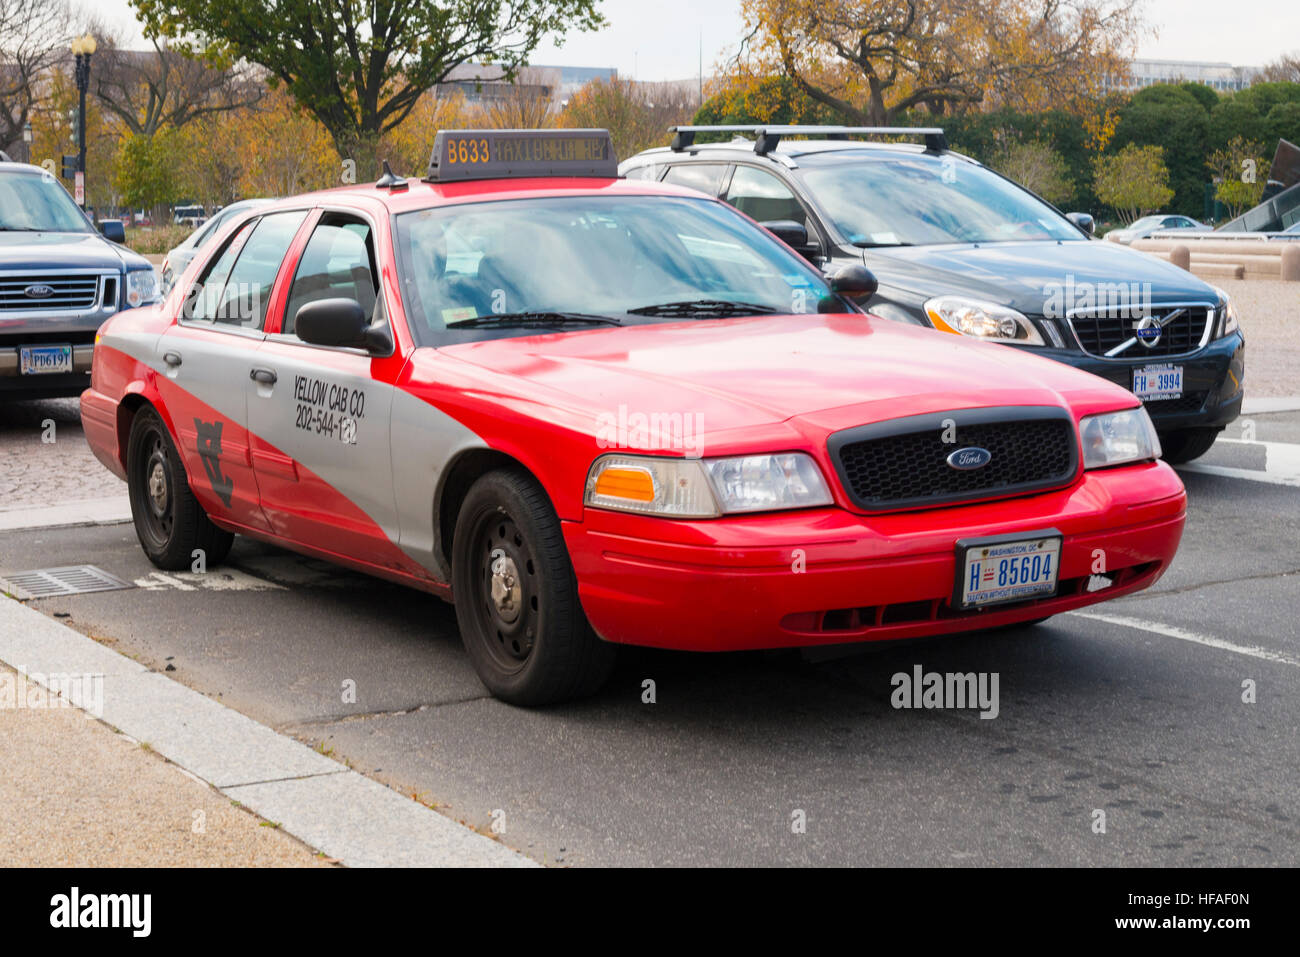 Ford Taxi Stock Photos Images Alamy 1949 Crown Victoria Usa Capital Washington Dc District Of Columbia Red Grey Gray Cab From The